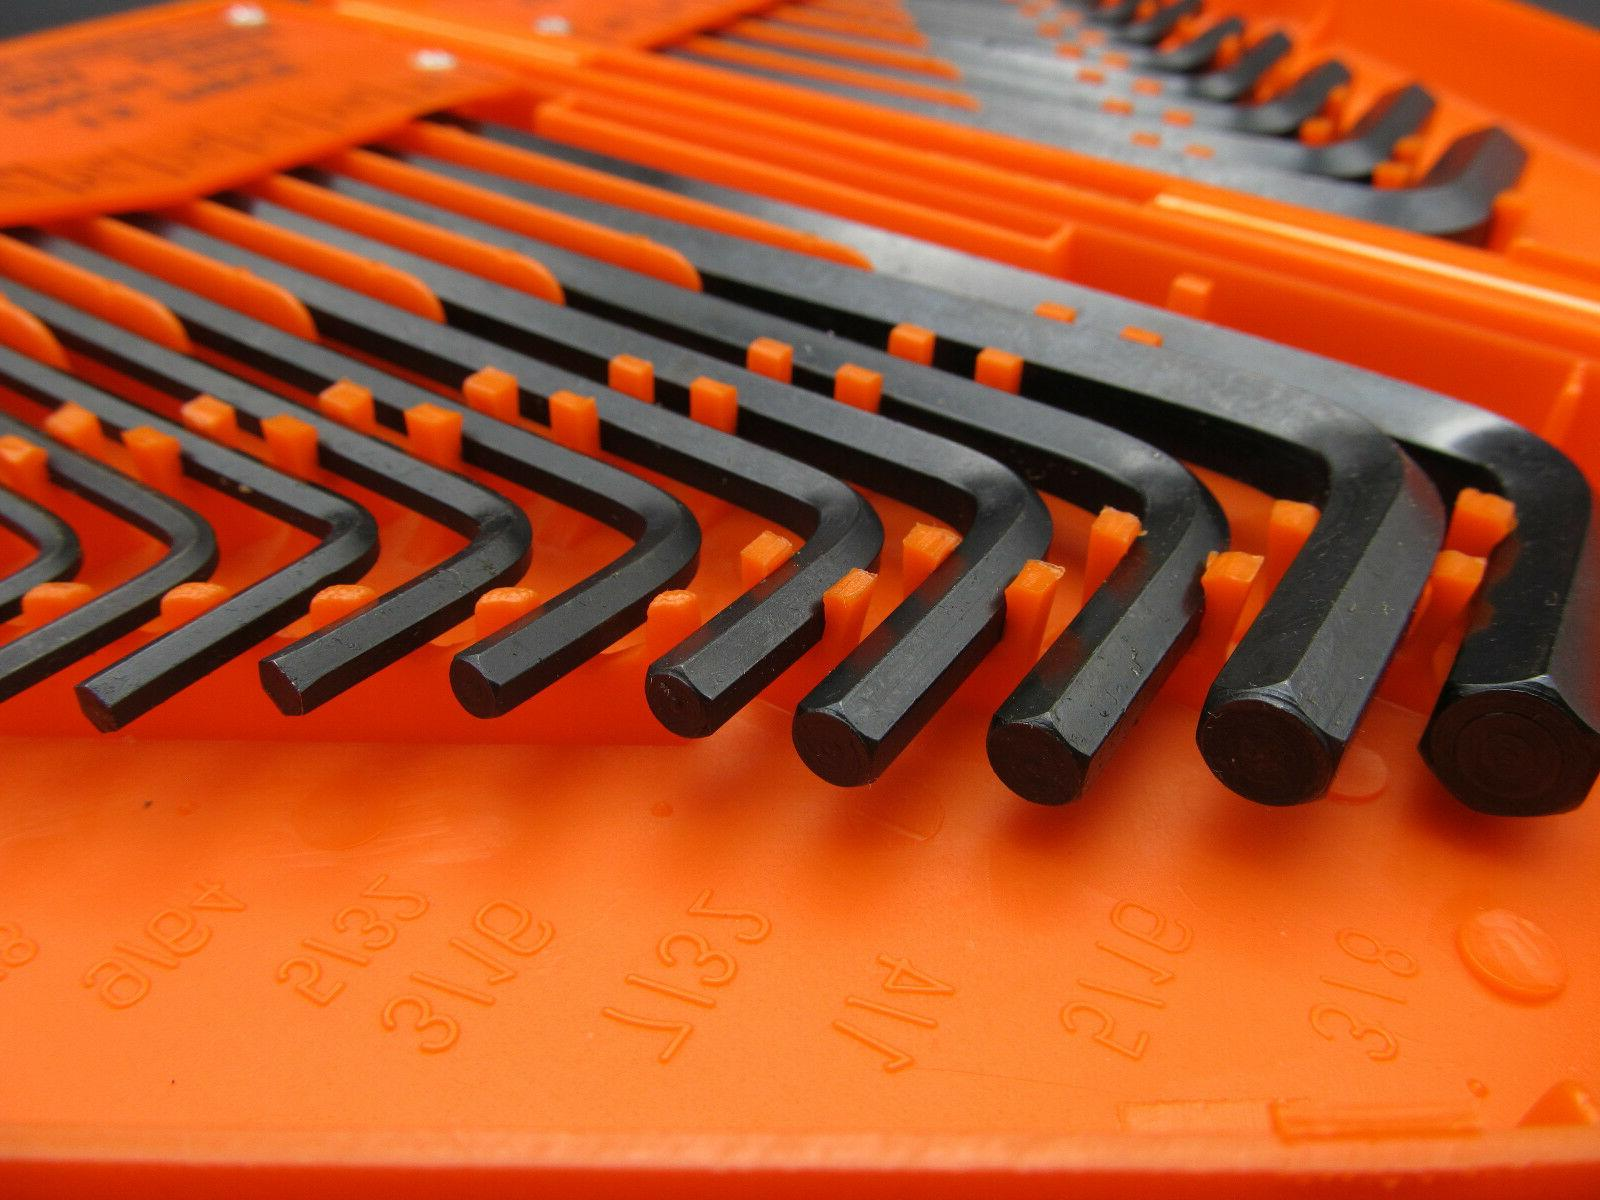 0PC SAE METRIC Allen Wrench Hex Case Tool Kit